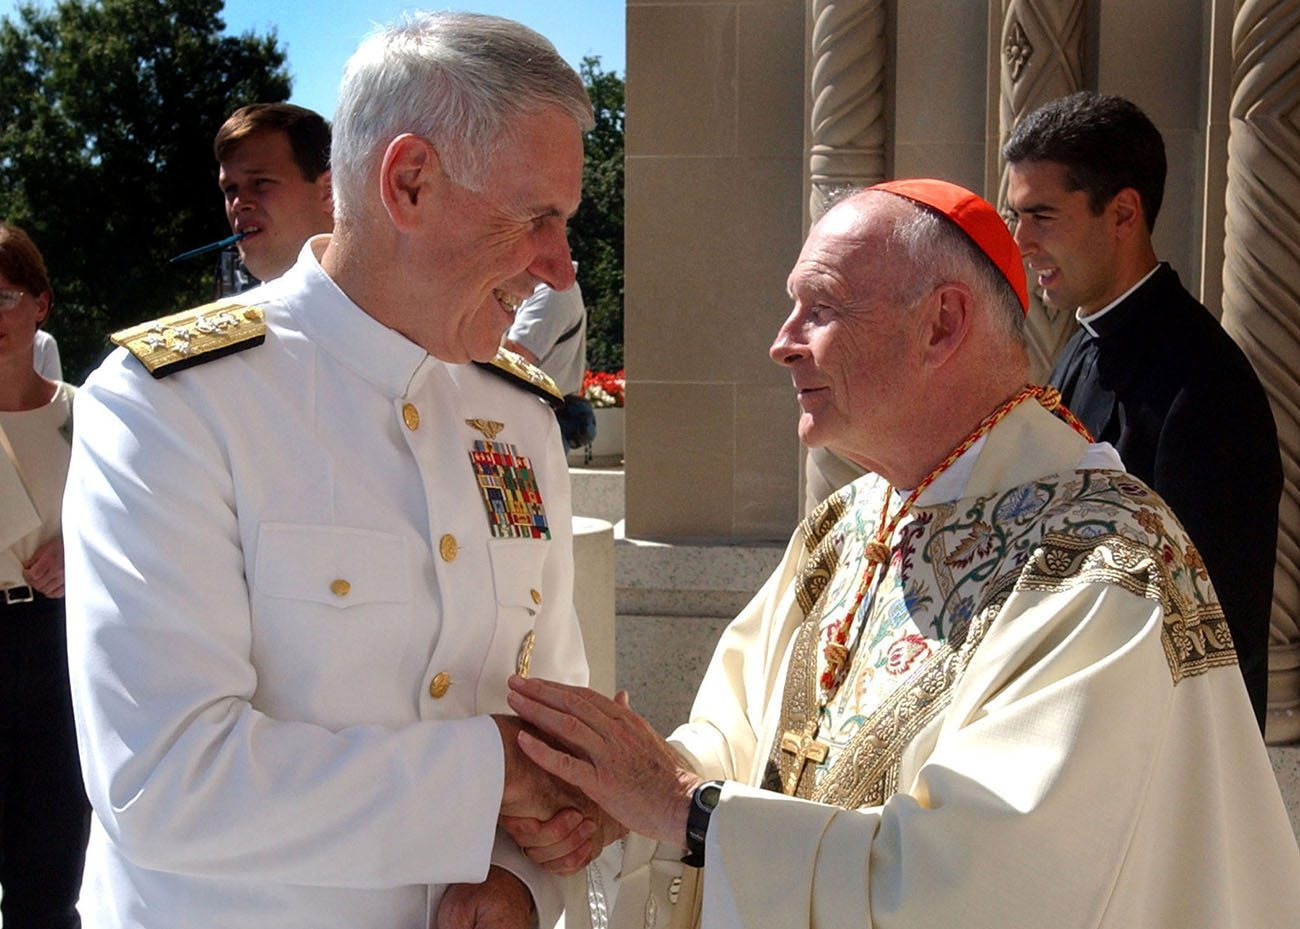 """us navy 010916 n 3235p 001 admiral william fallon vice chief of naval operations greets his eminence theodore cardinal mccarrick archbishop of washington - <b>""""I'm a Priest, I Won't Harm You.""""</b> How Church Pedophilia Is Flourishing in Poland, and Why Priests Aren't Punished - Заборона"""